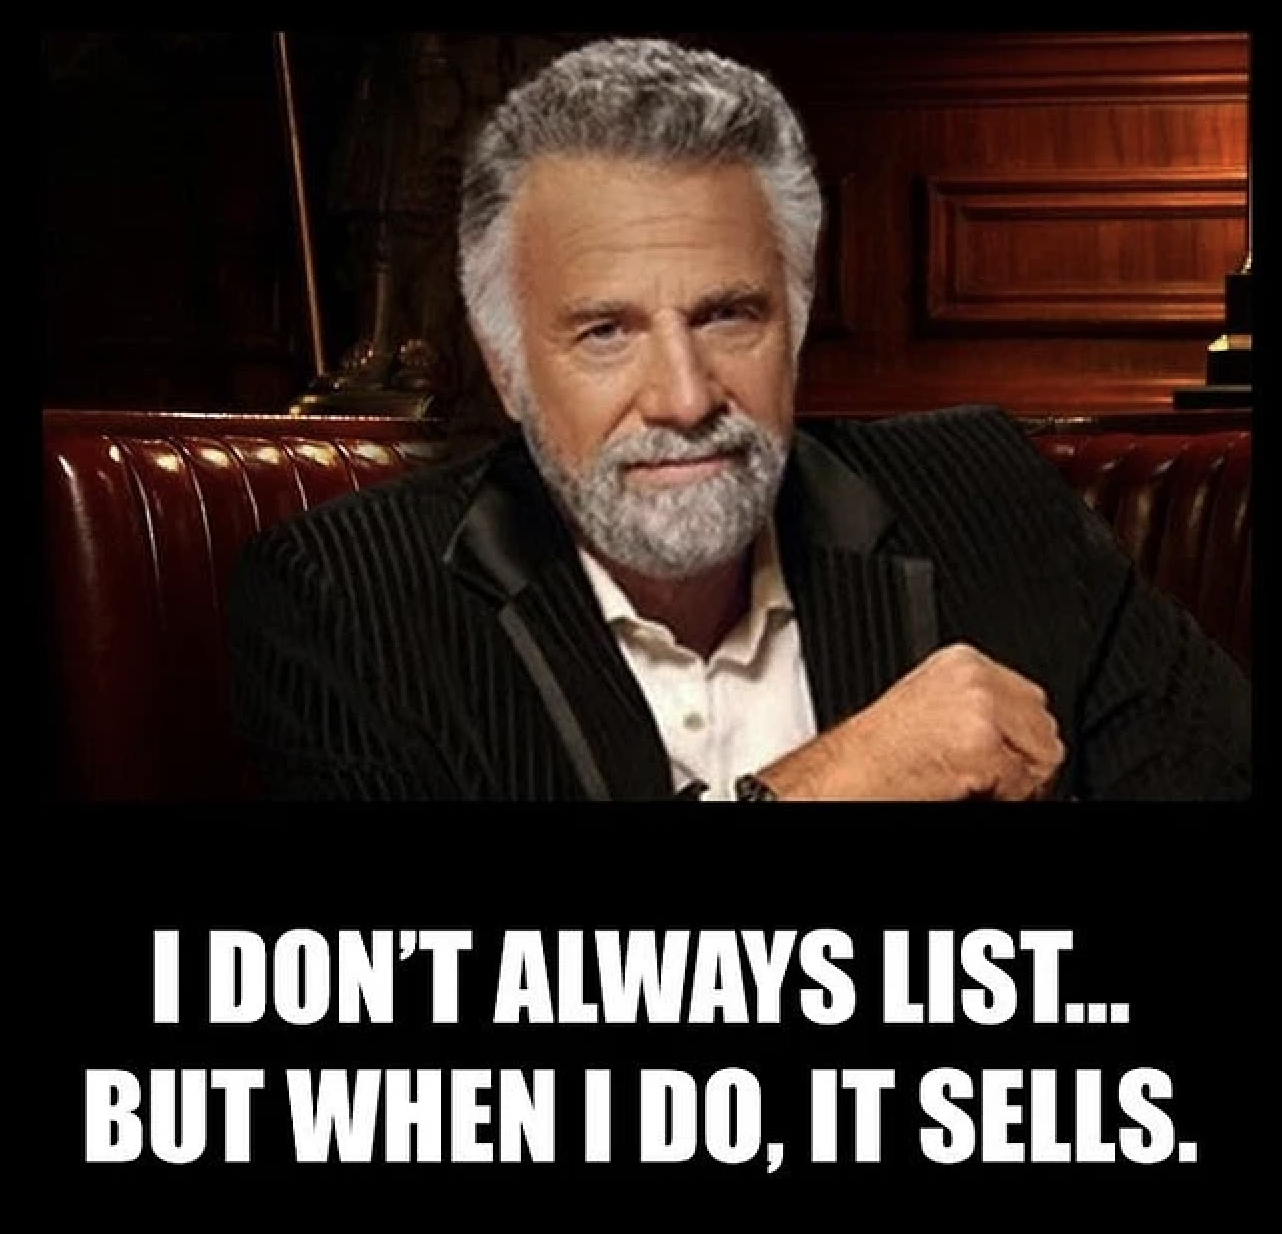 i don't always list... but when i do, it sells